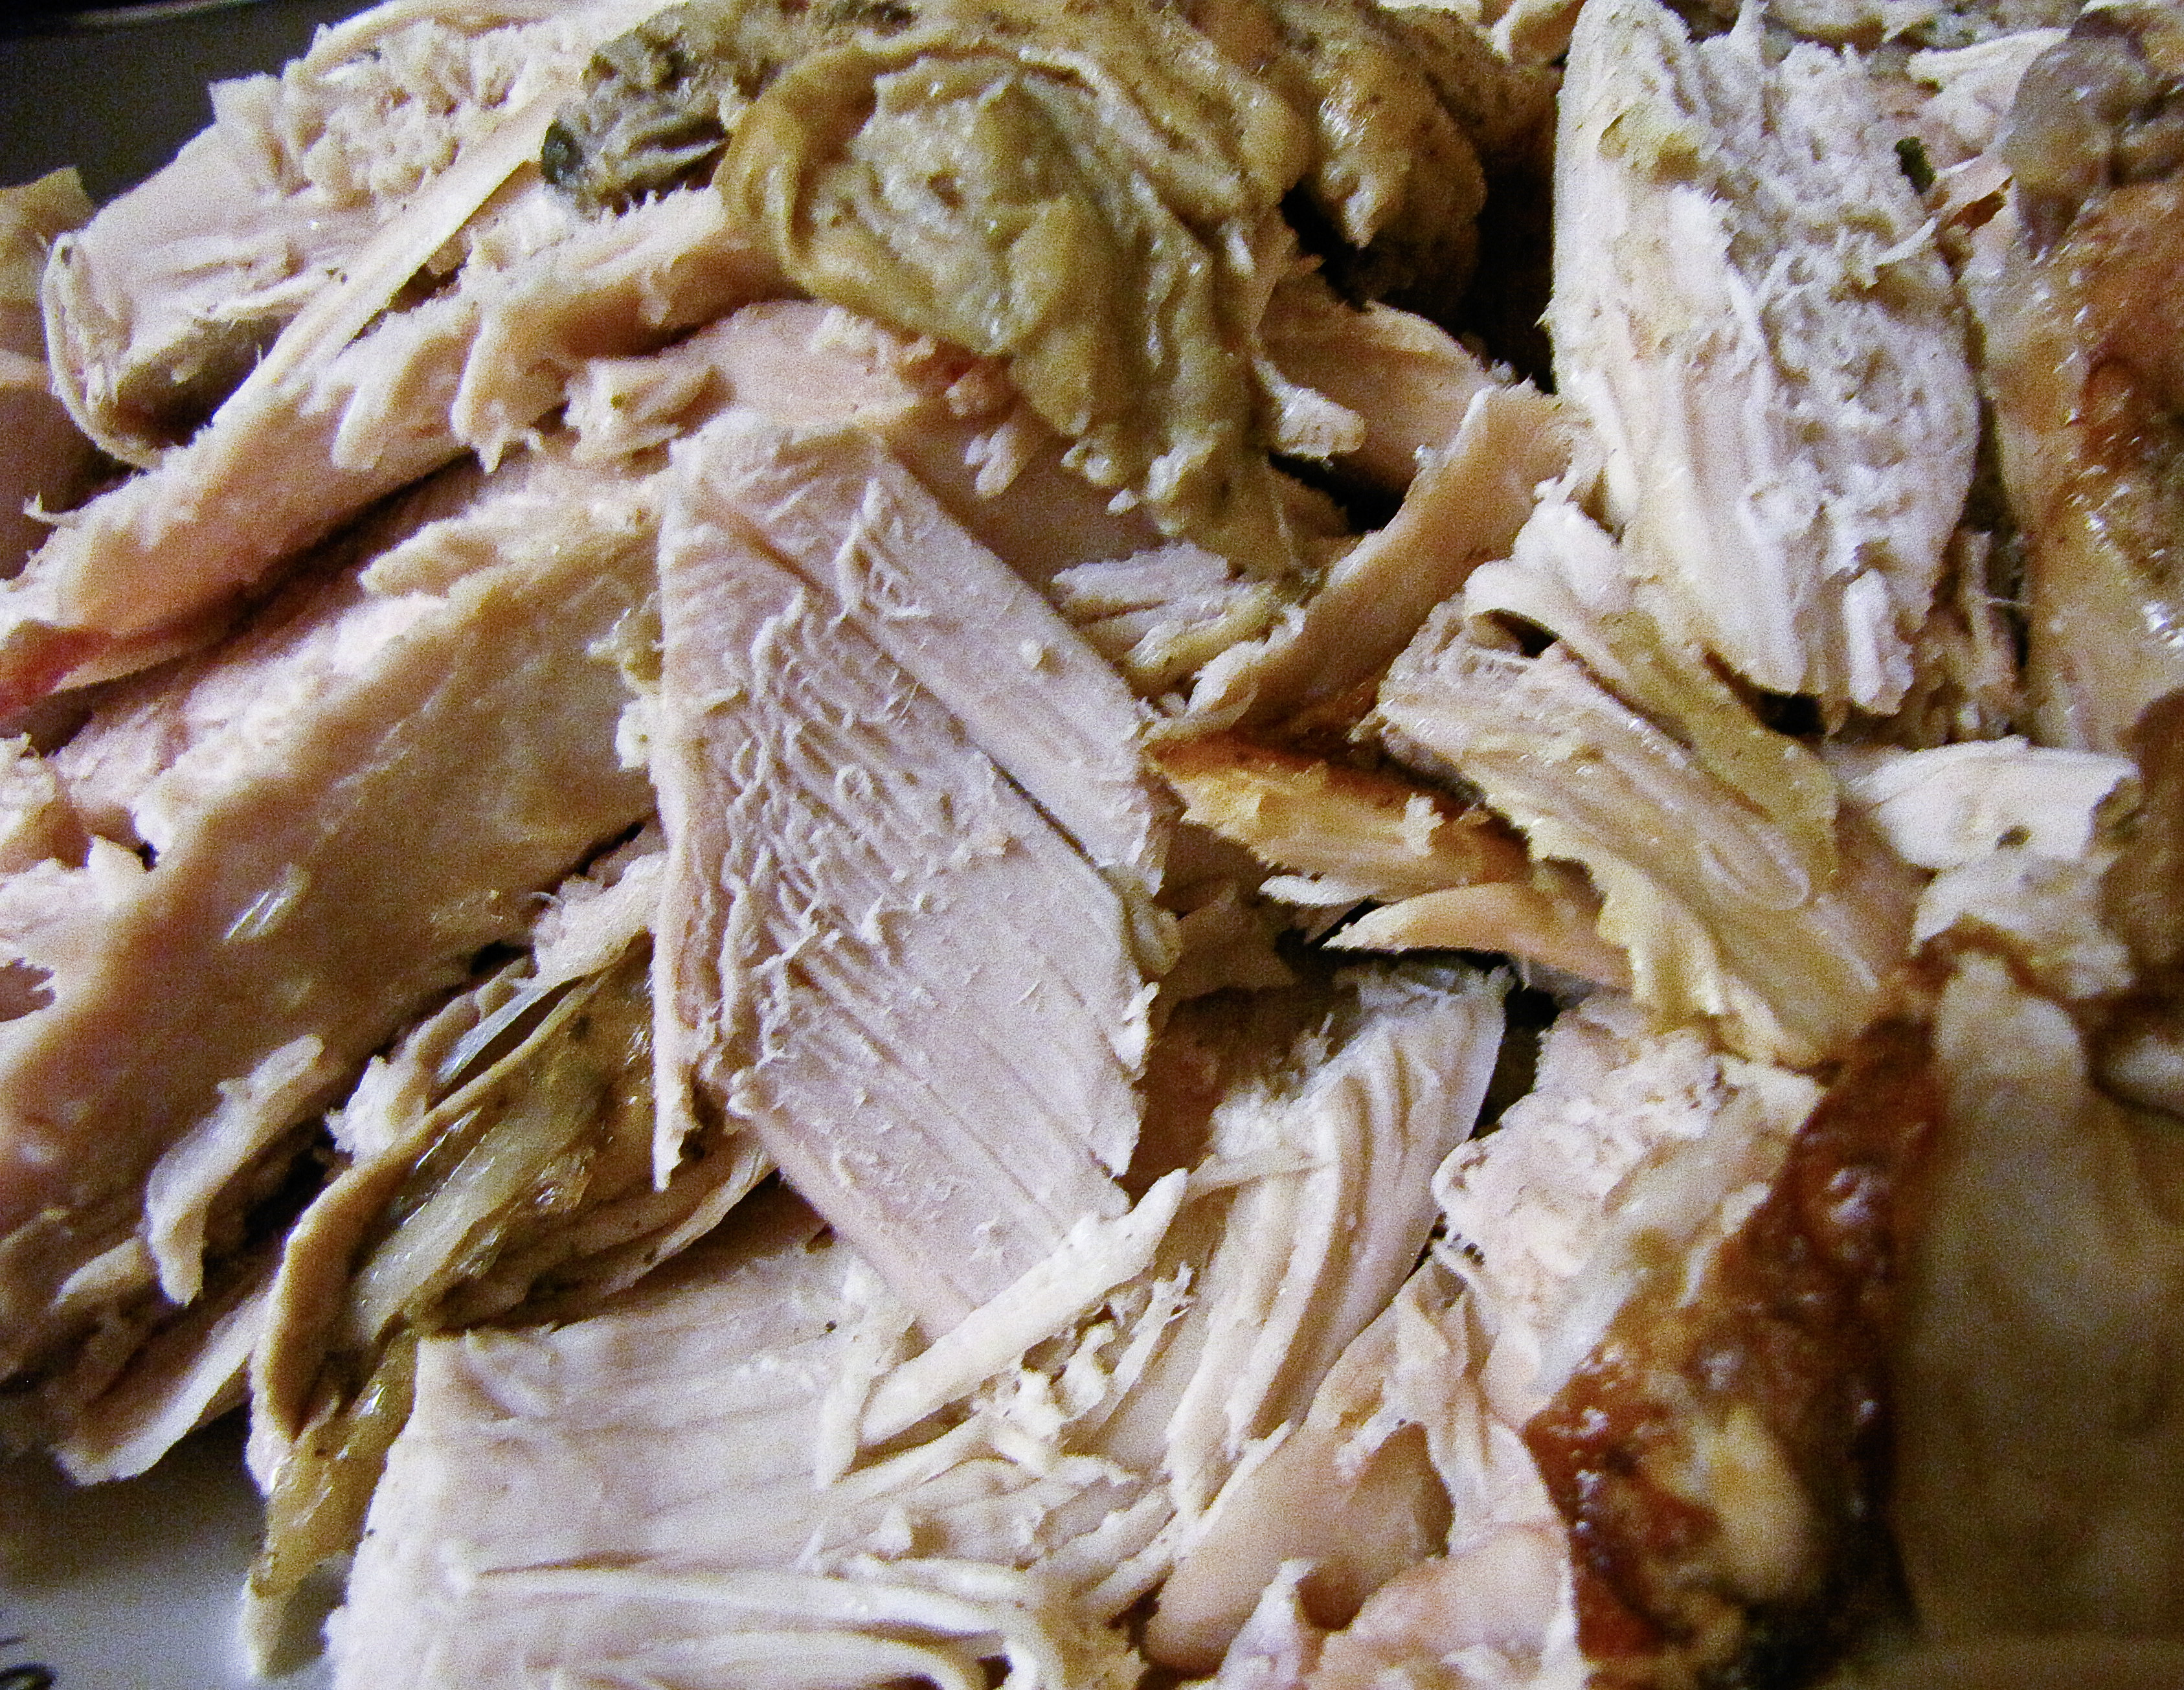 ... Days of Christmas Dish#7: Sage Butter Roasted Turkey with Cider Gravy